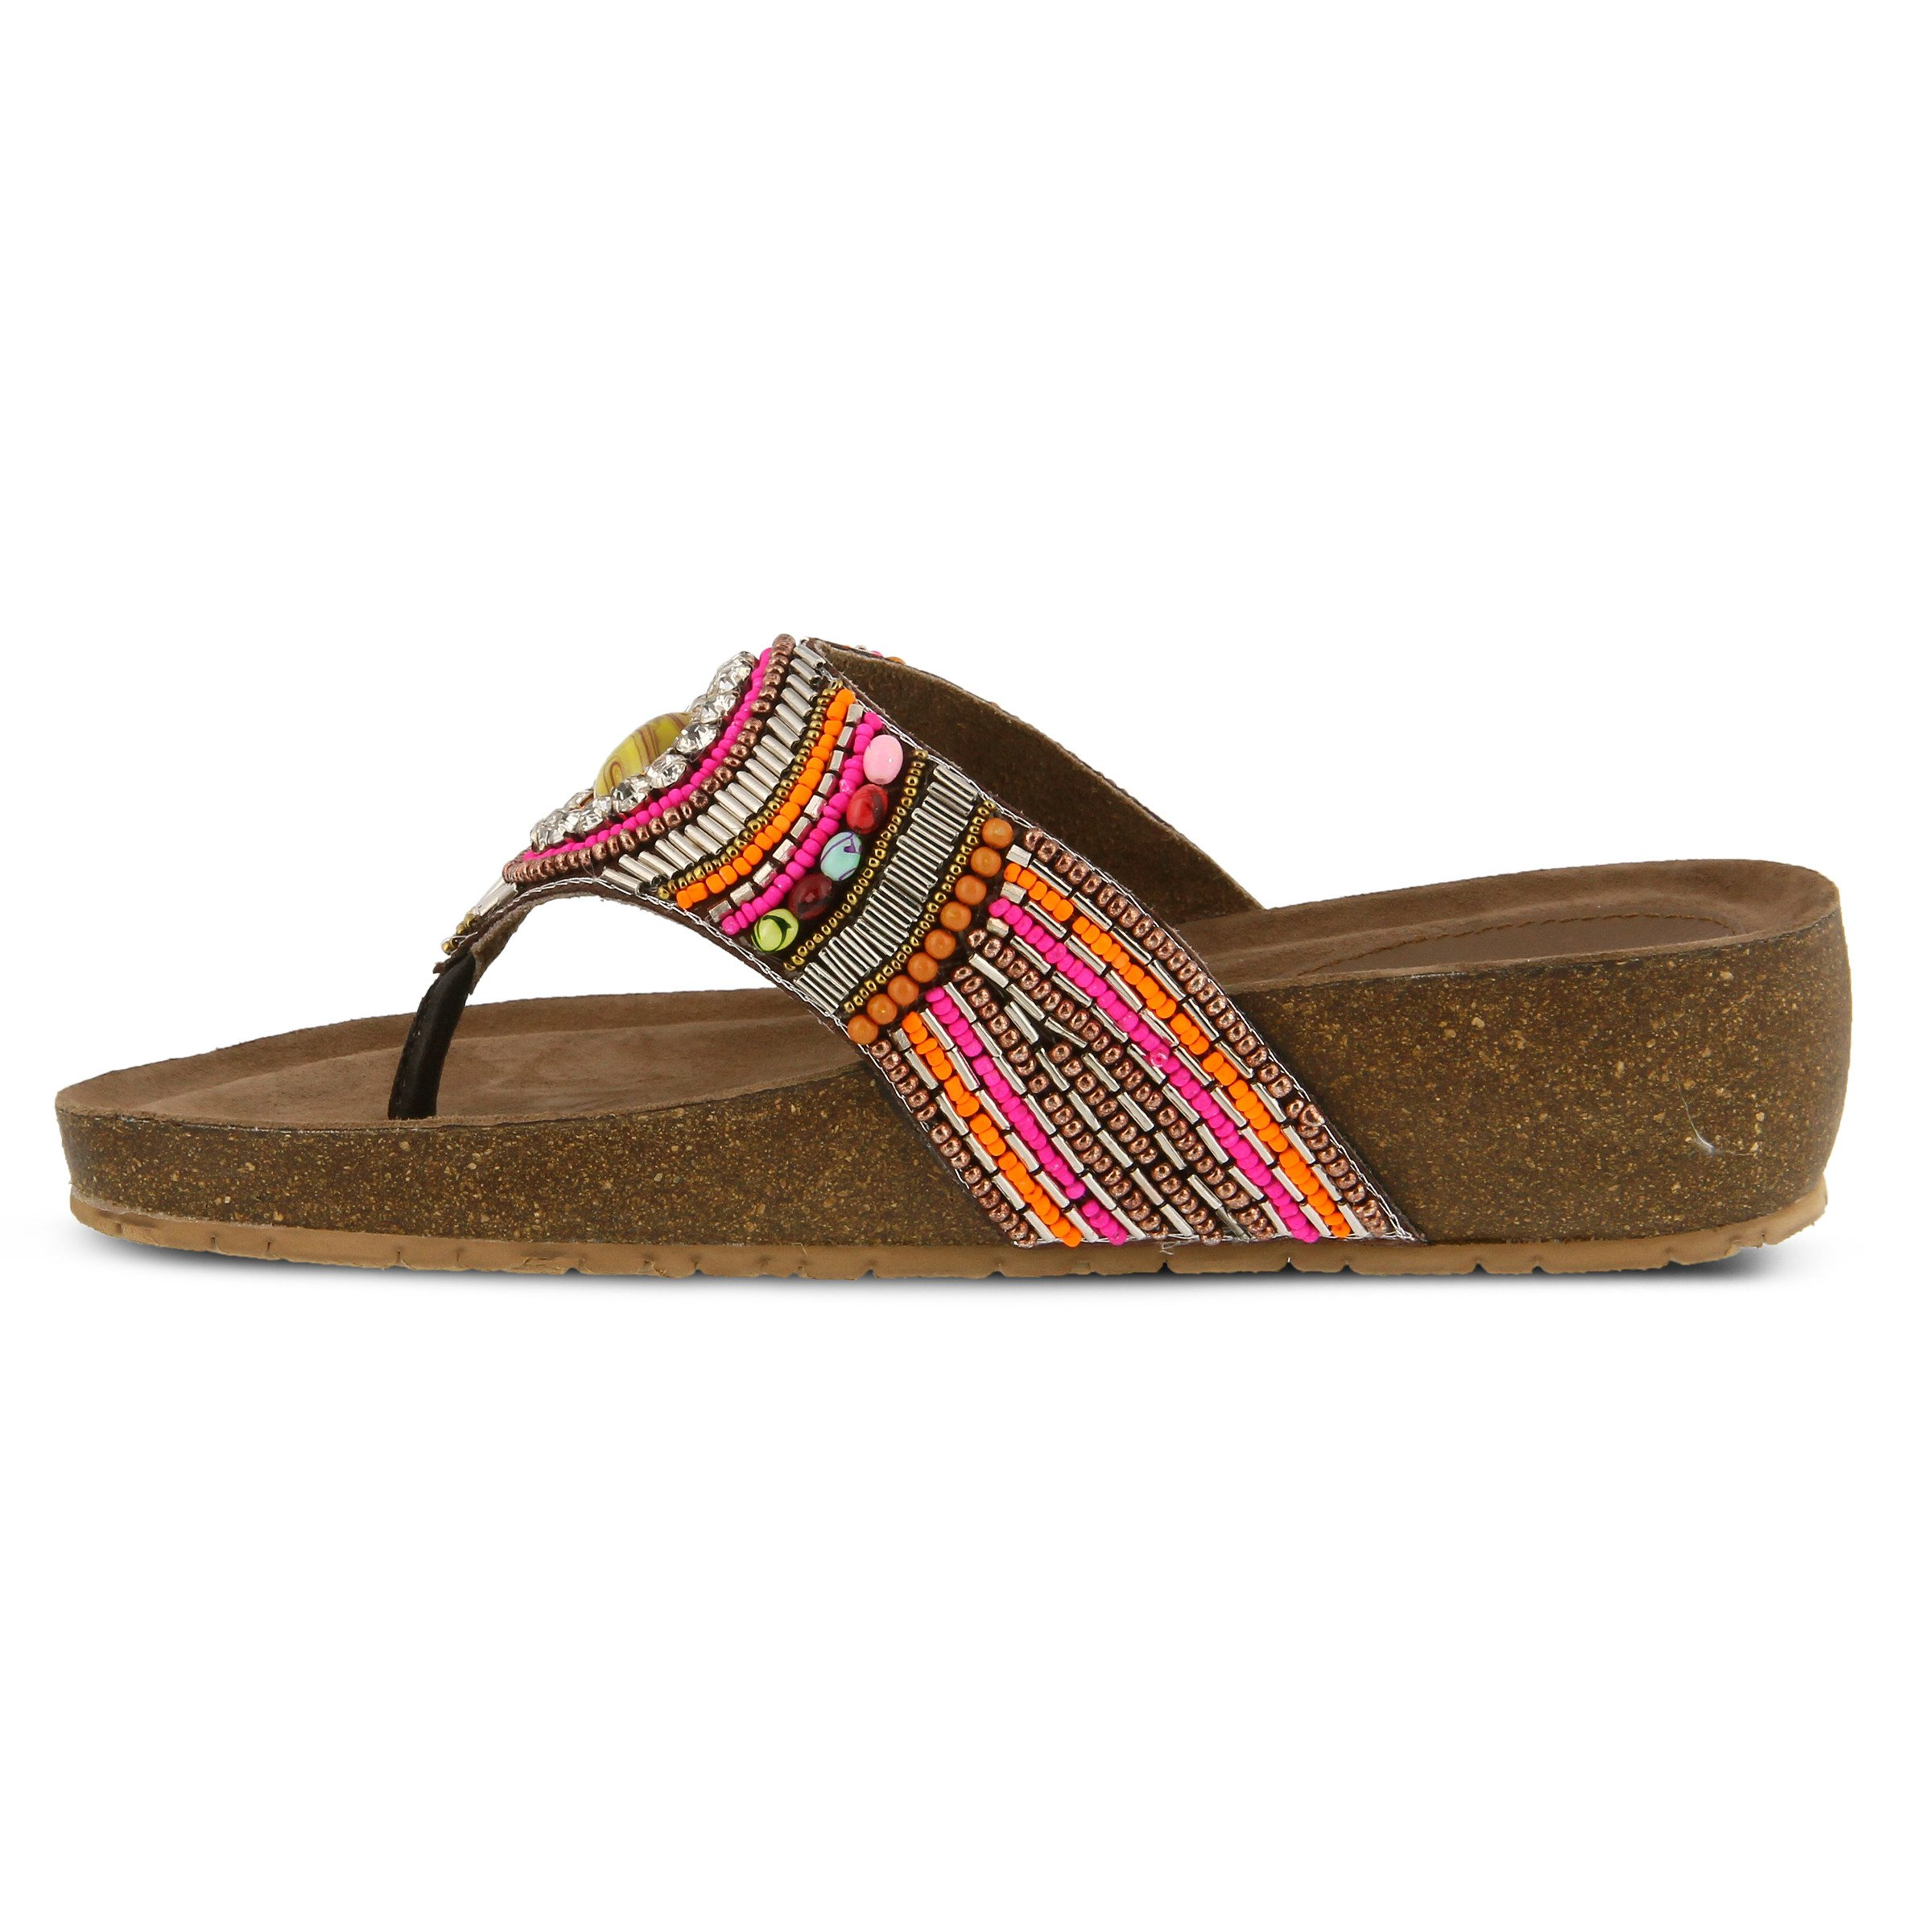 ANAROSA-BRM - US ANAROSA 39 Euro (Women US - 8.5) / Brown_Multi f3de88